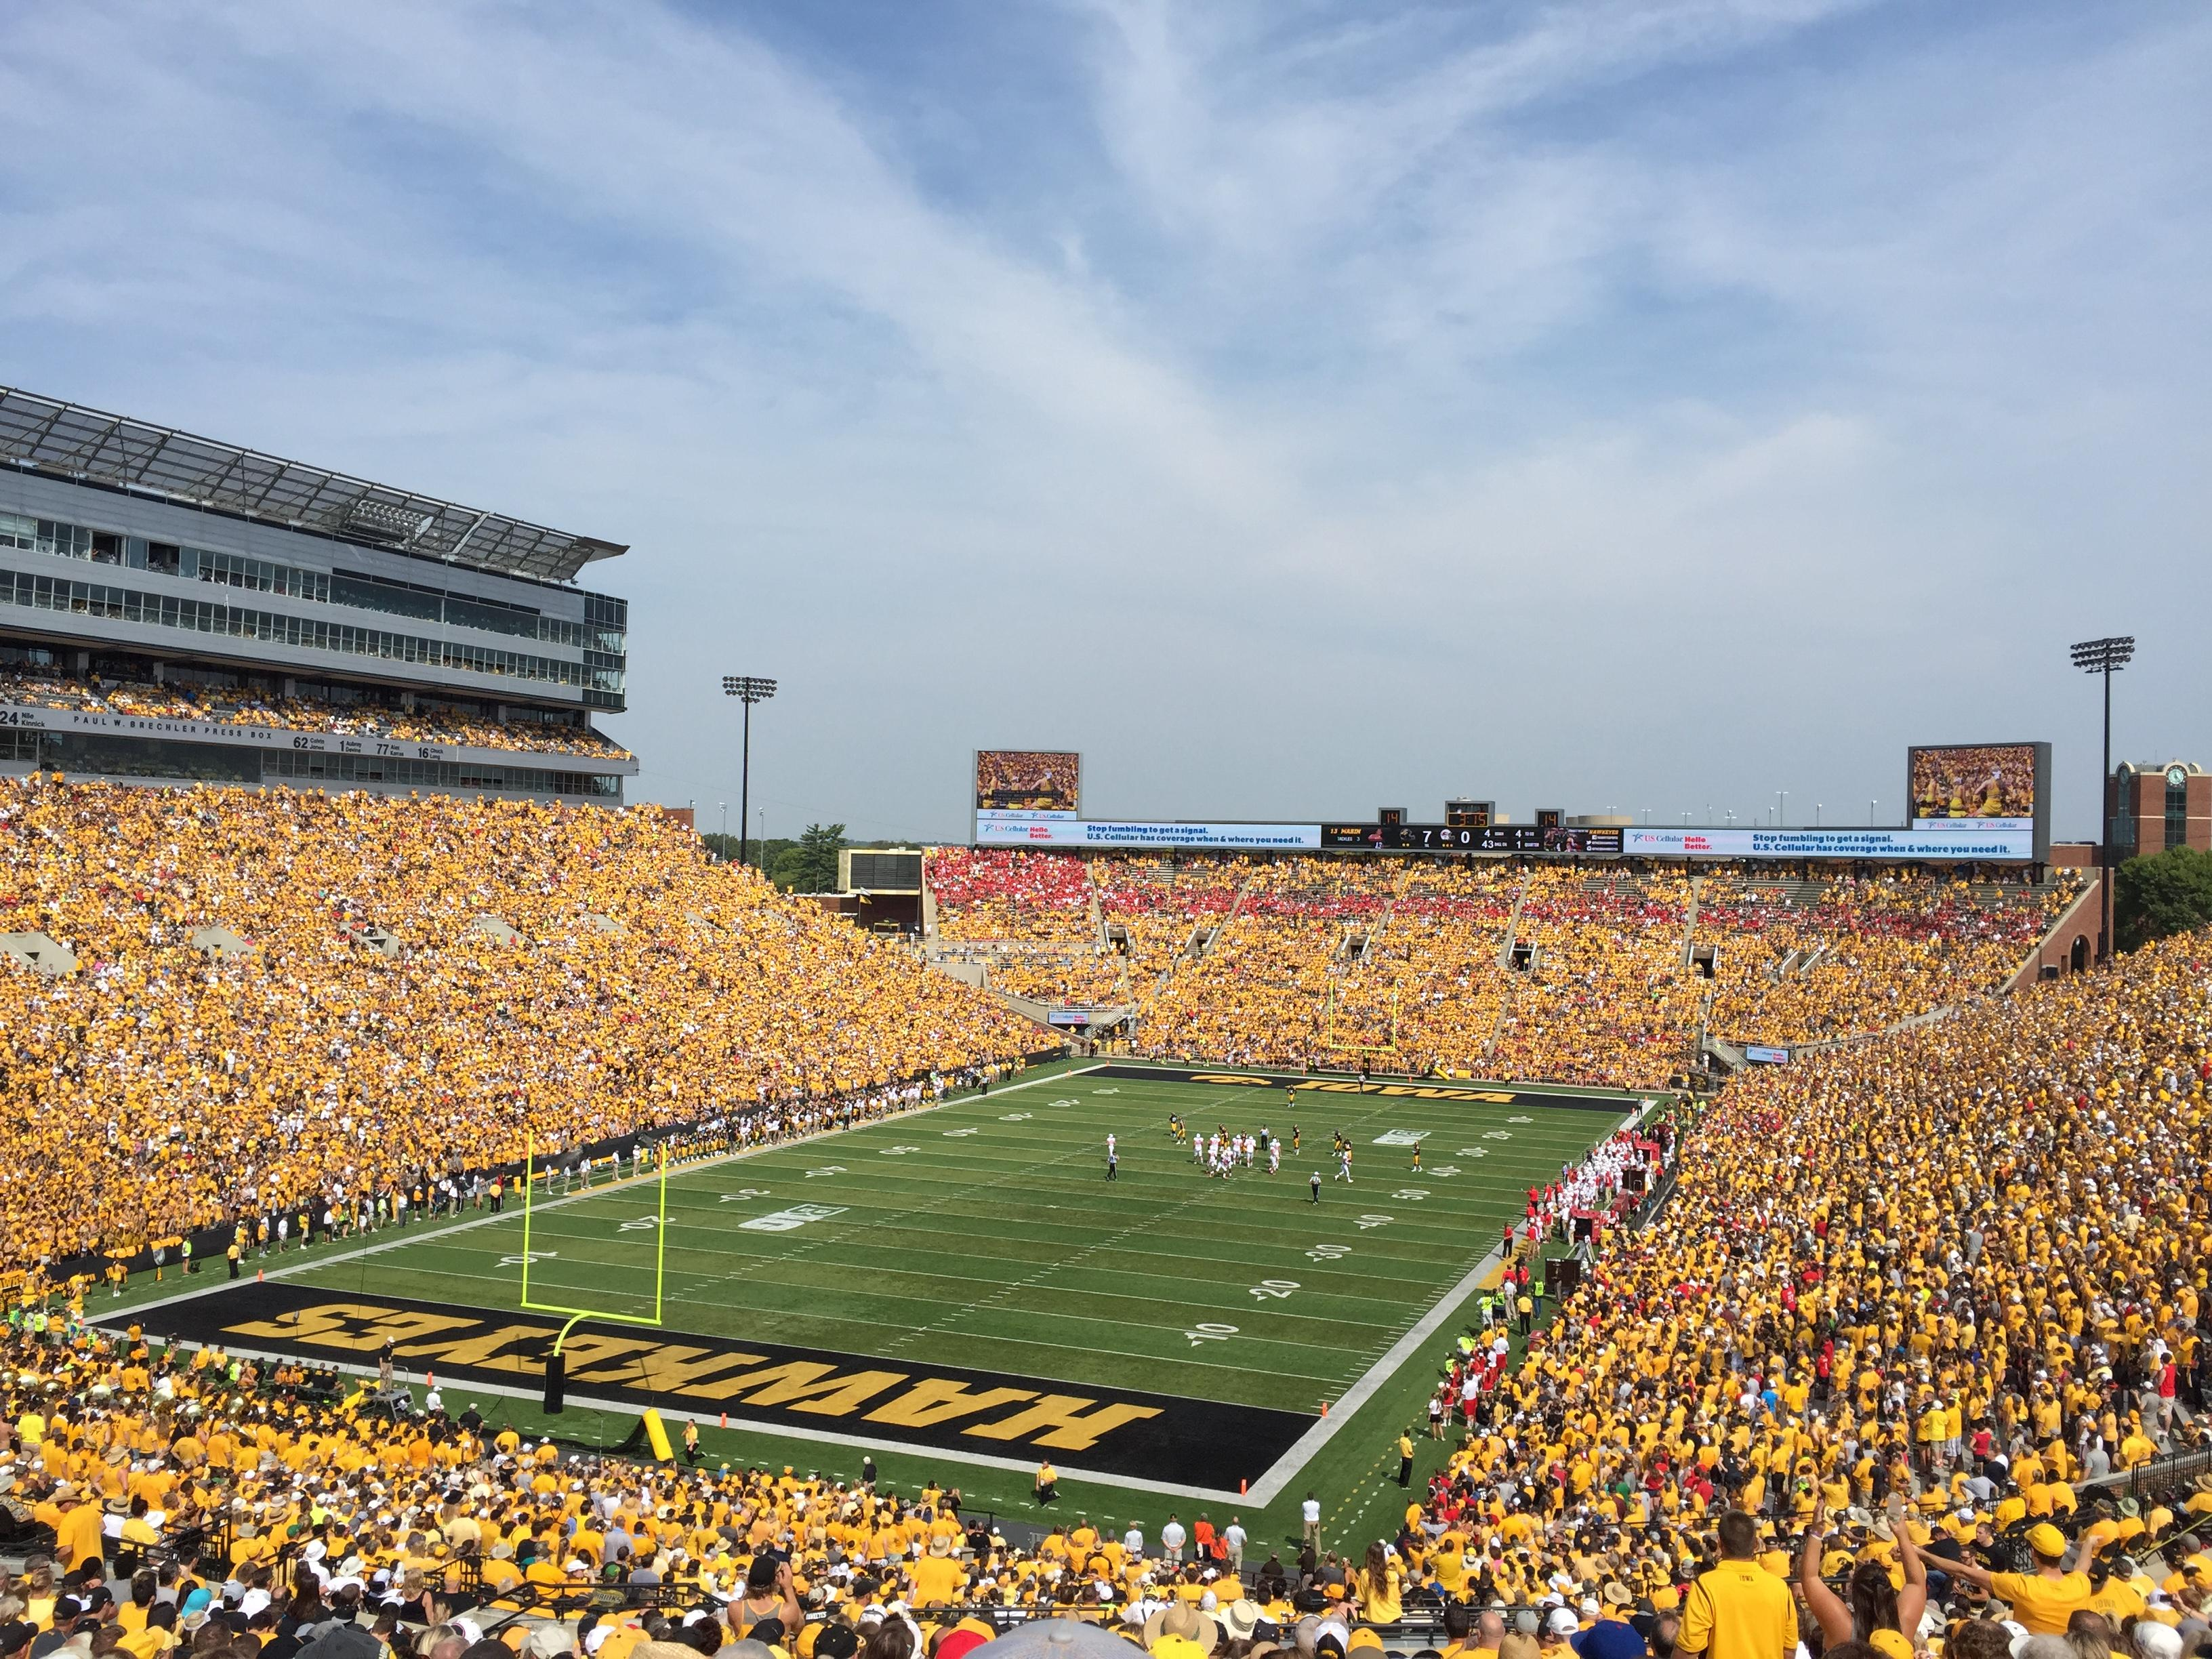 Kinnick Stadium Section 213 Row 27 Seat 4